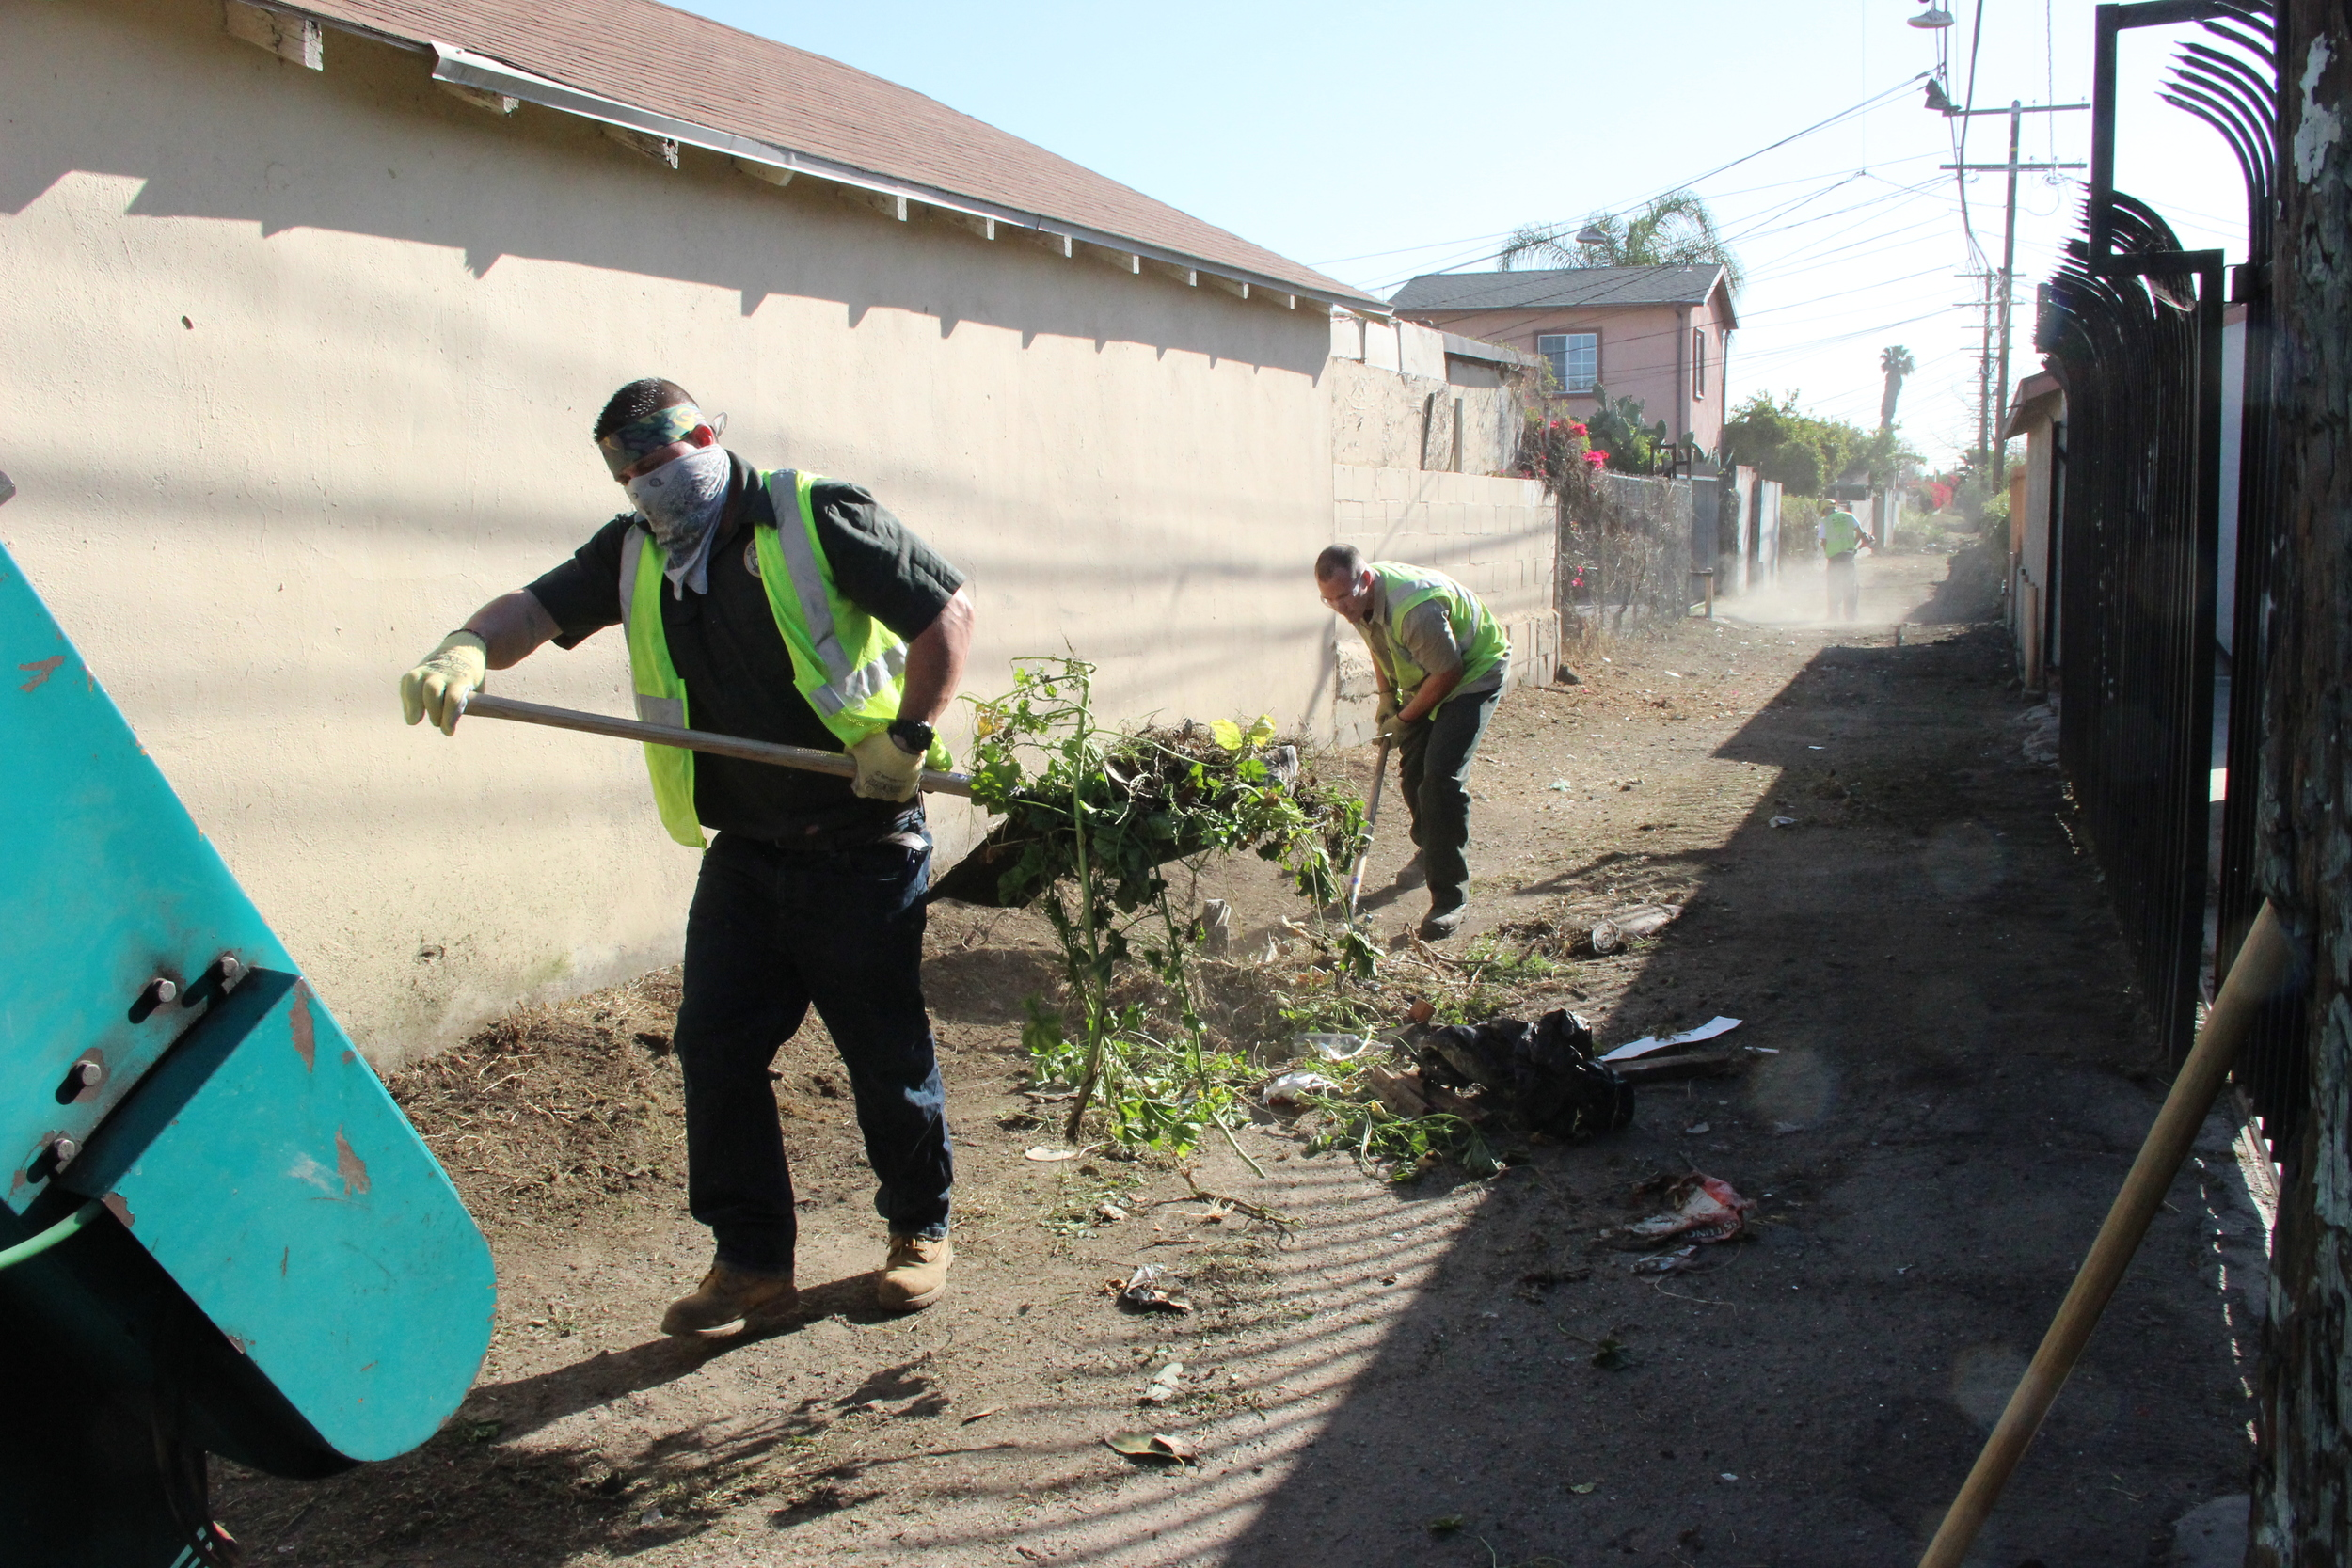 Clean Streets L.A. crews use a two ton rear loader collection truck with hand and power tools to remove abandoned waste and overgrown vegetation in a dirt alley more than 350 yards long.